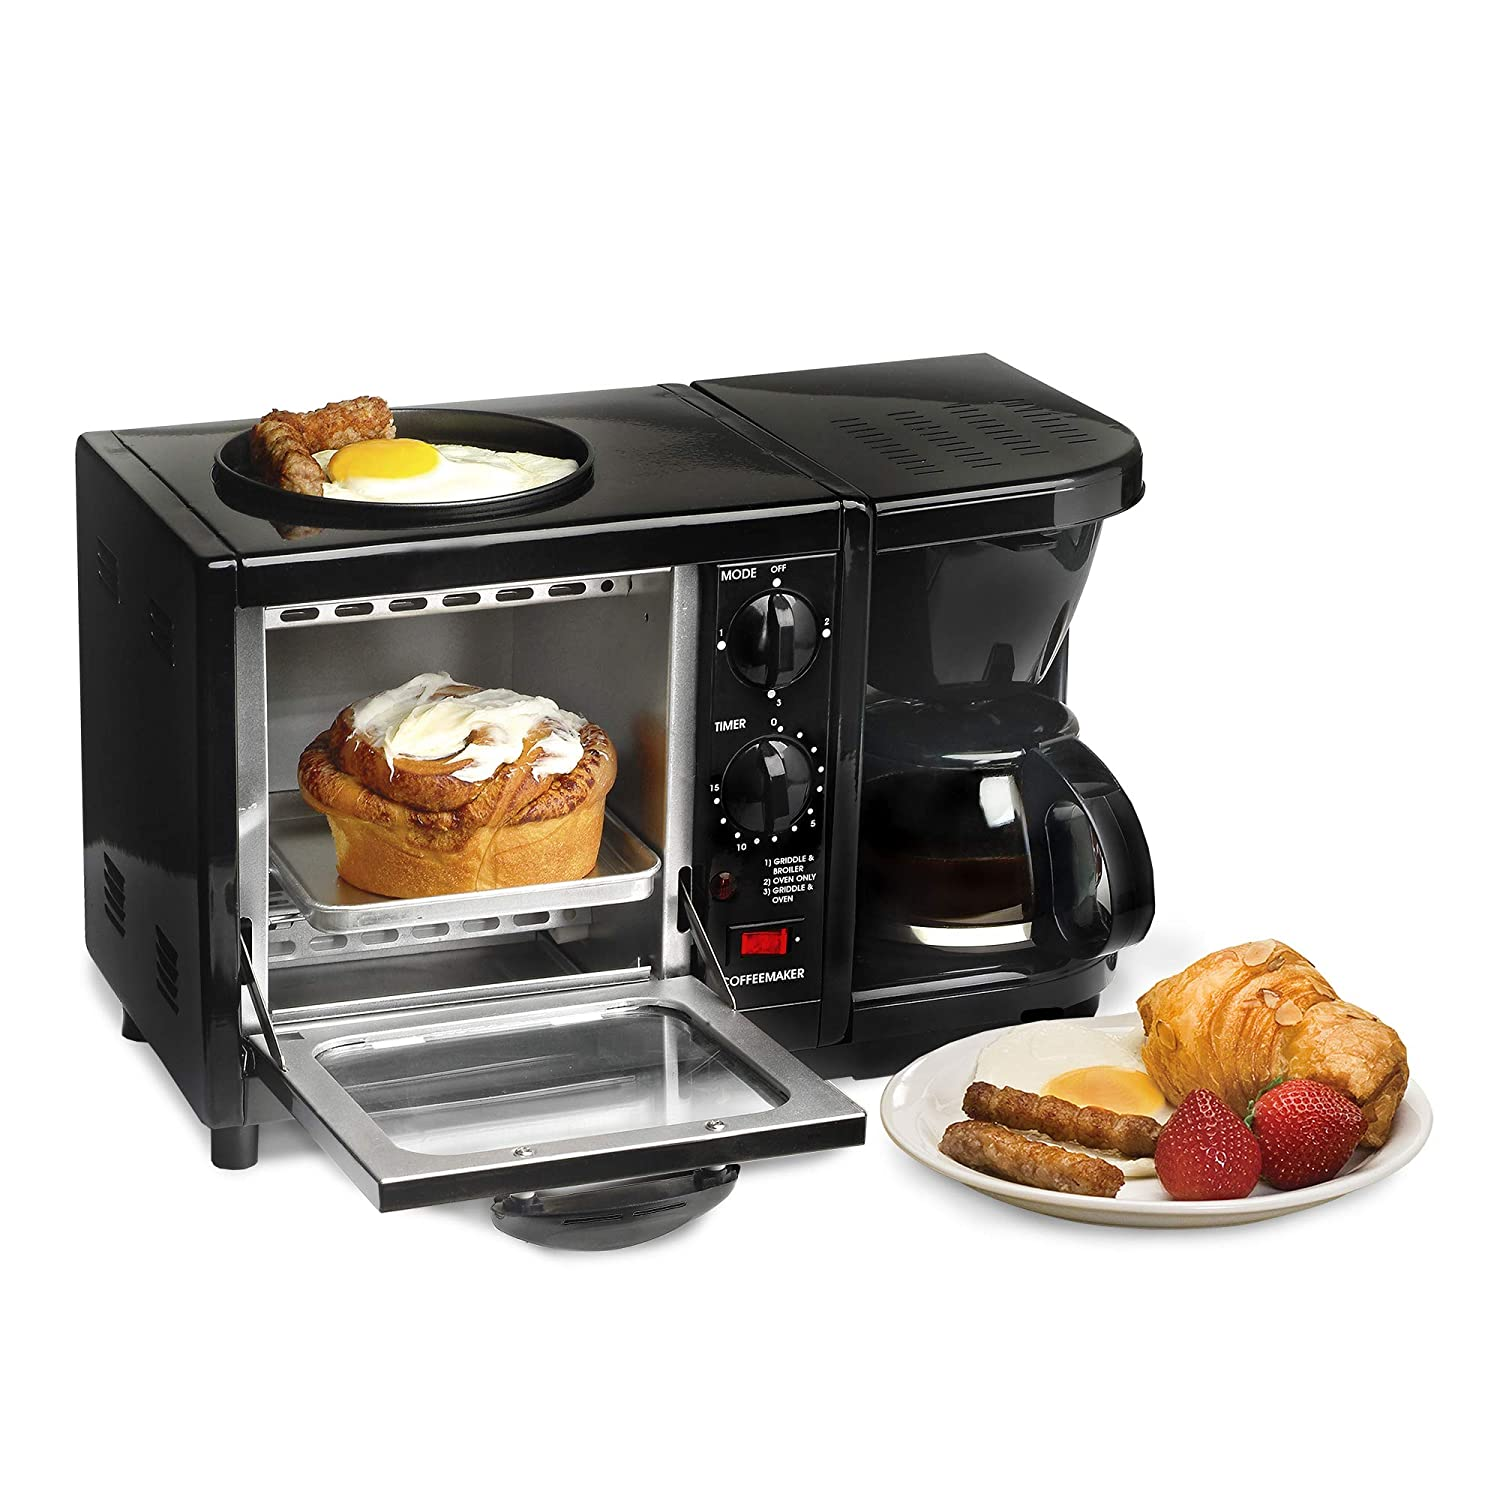 Elite Cuisine EBK-200B Maxi-Matic 3-in-1 Multifunction Breakfast Center, Black